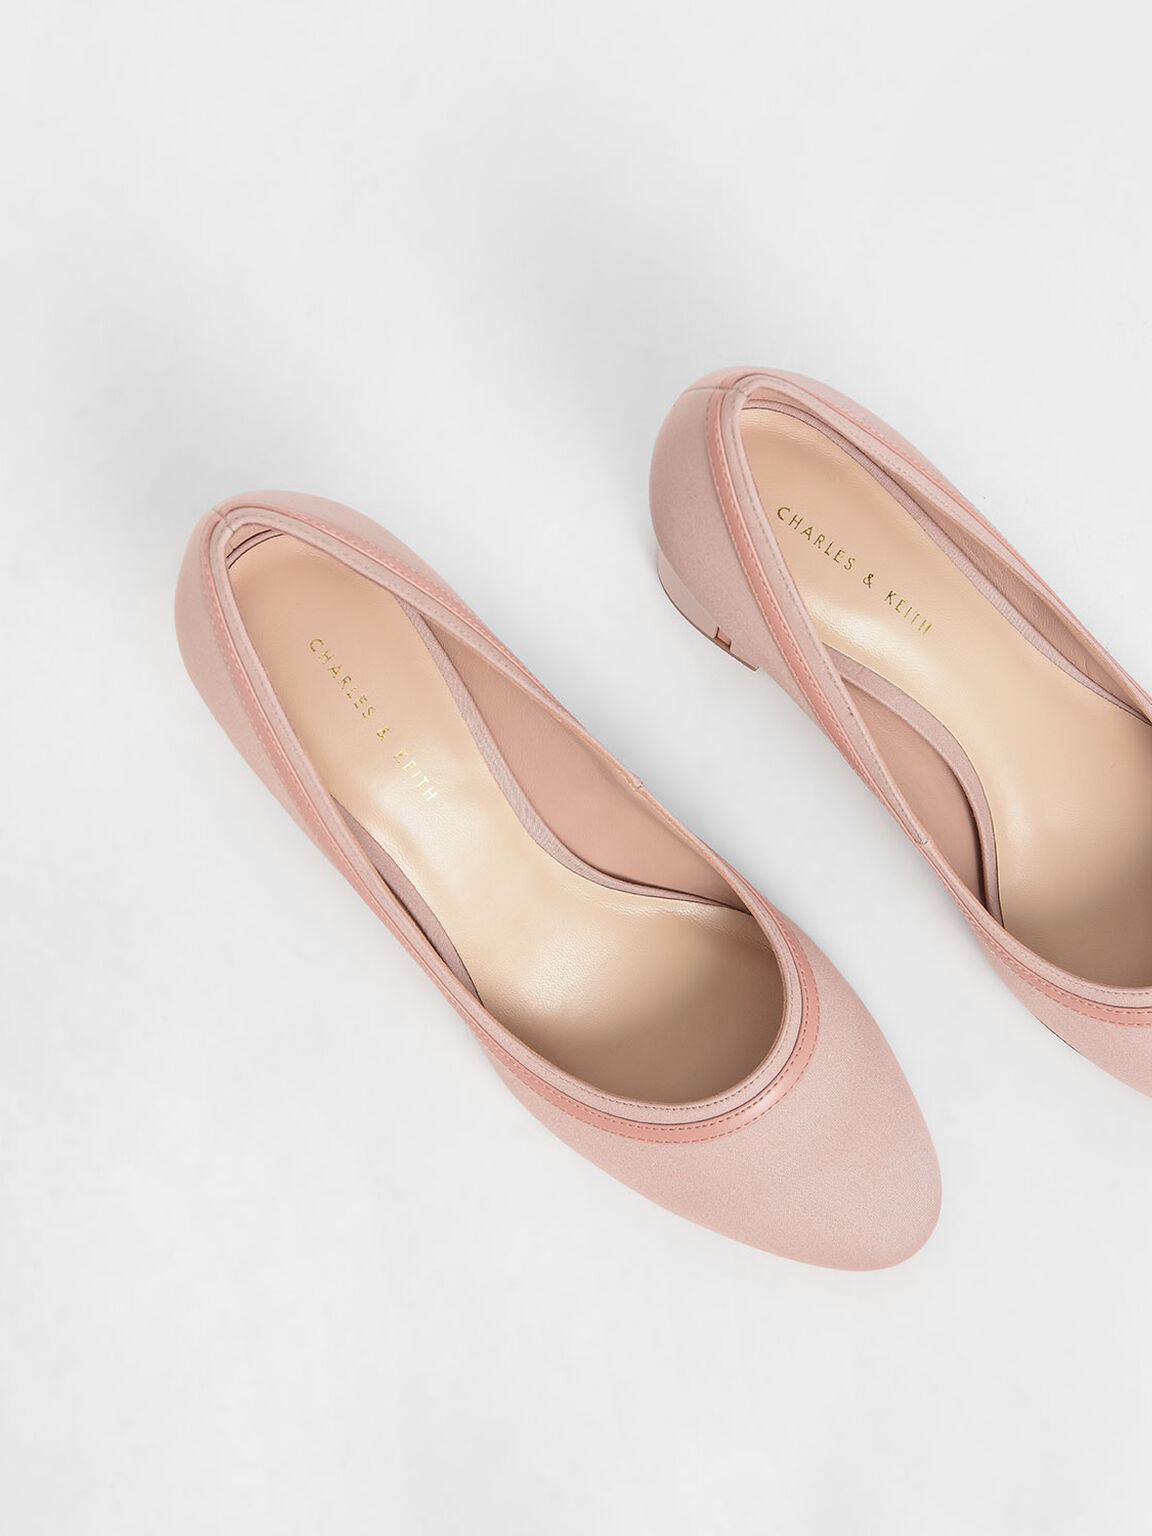 Round Toe Block Heel Pumps, Nude, hi-res